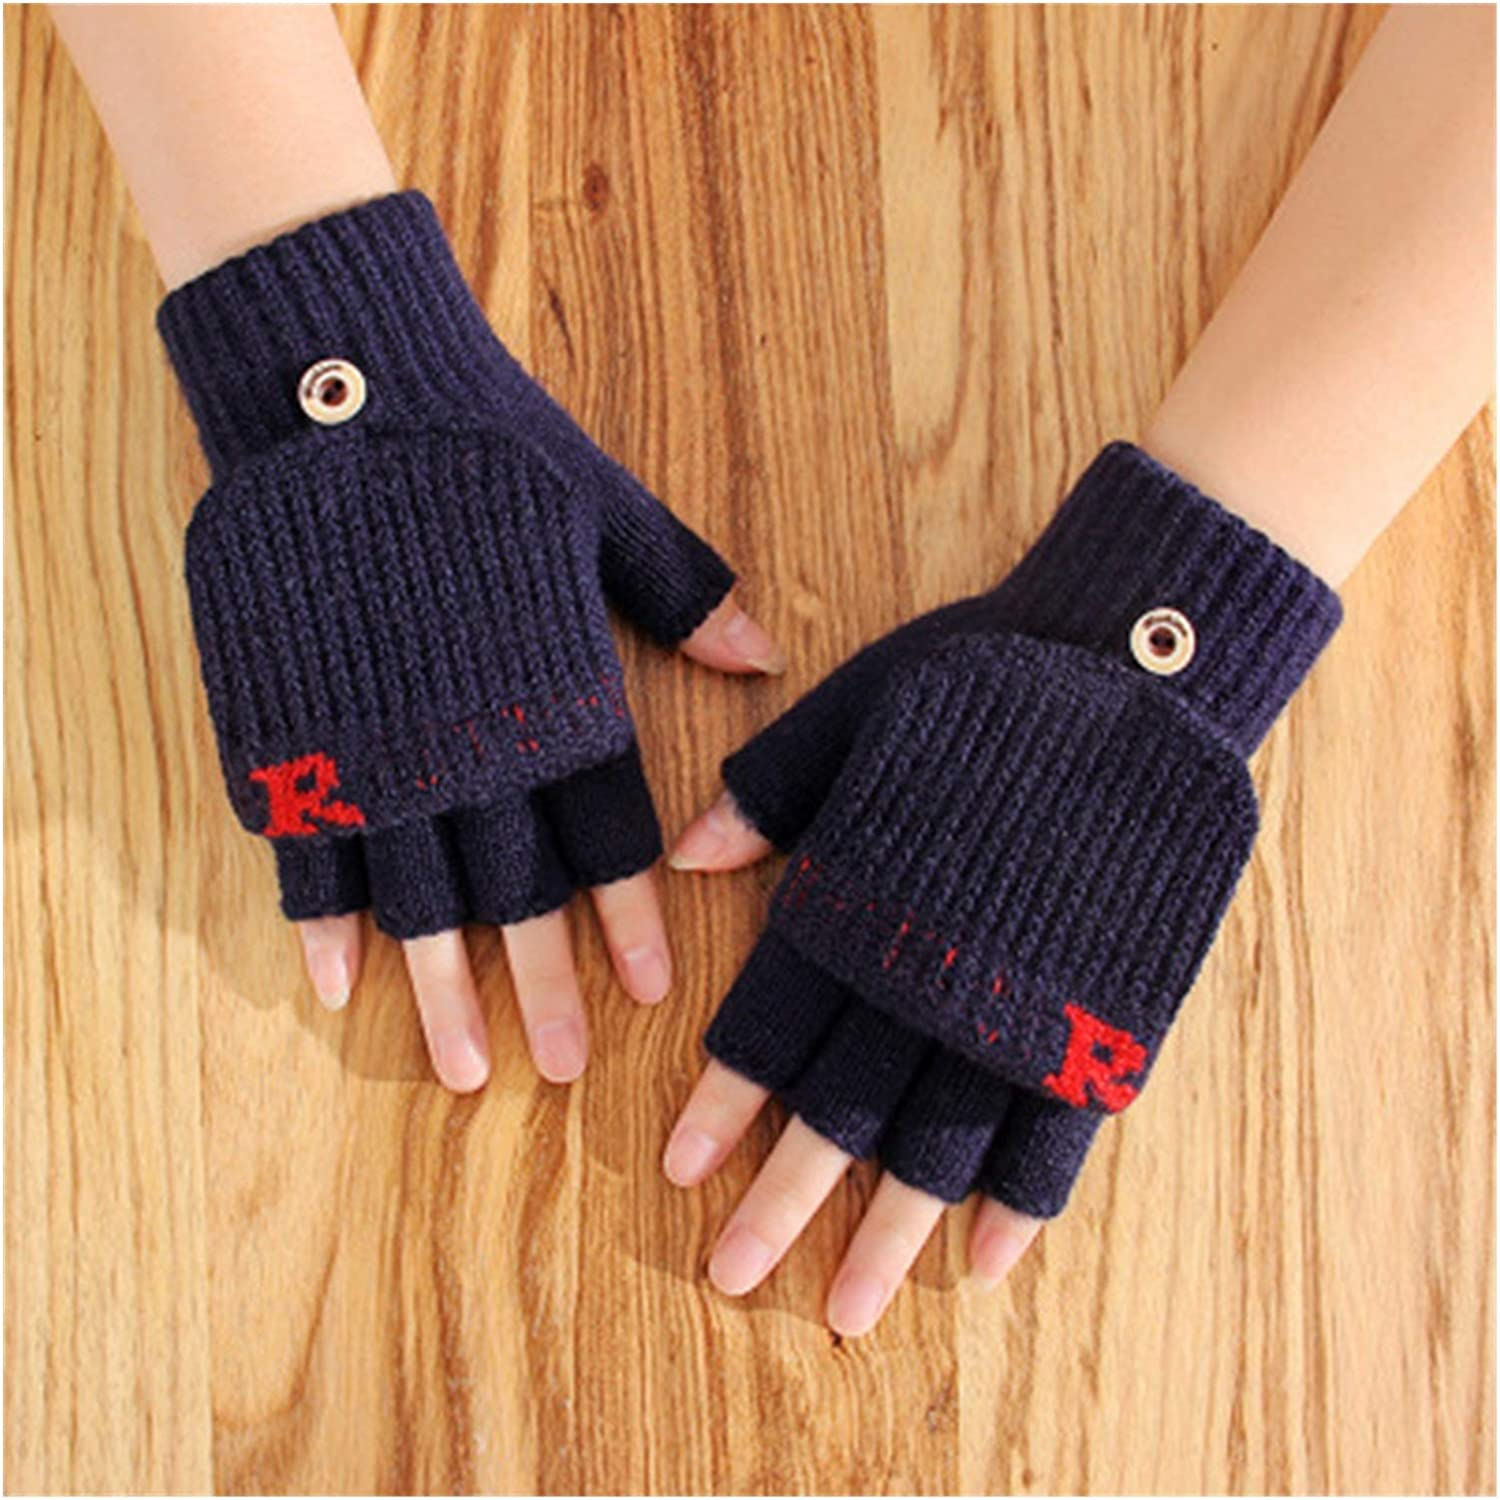 GUYANMAY Lace Gloves Unisex Winter Flip Fingerless Knitted Wool Warm Typing Mittens Male Half Finger Elastic Touch Screen Cycling Driving Gloves (Color : Dark Blue)